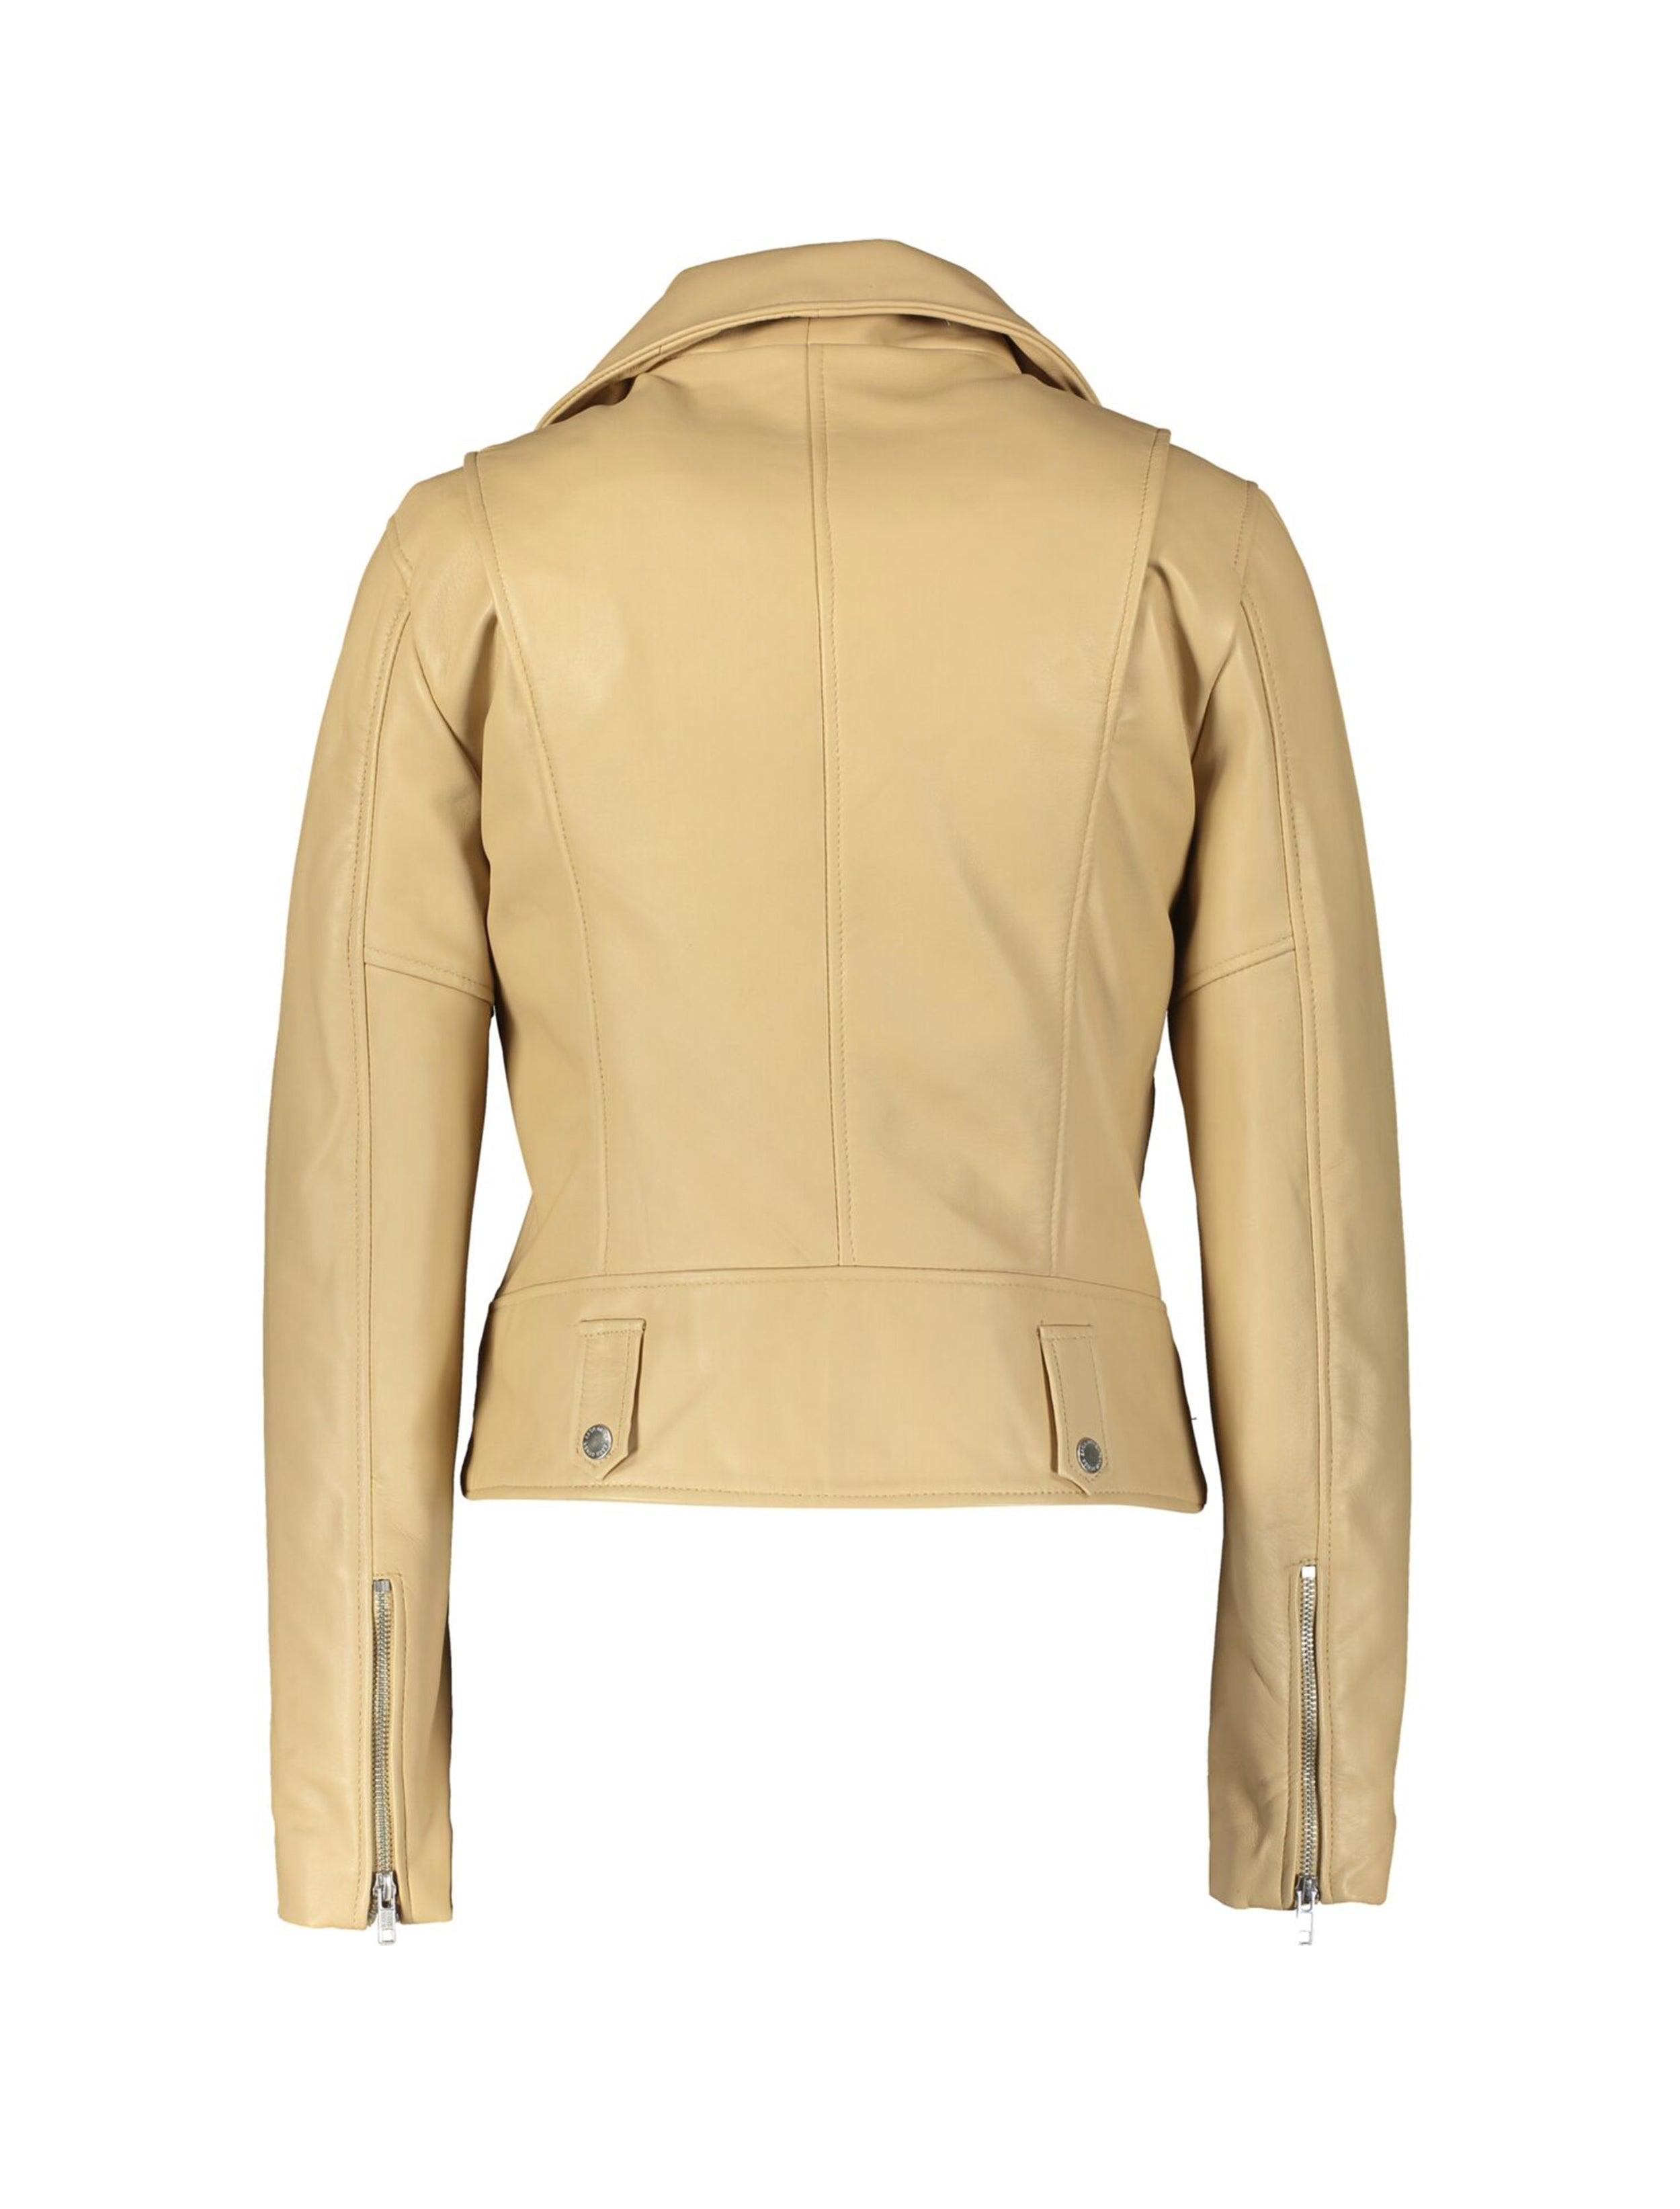 BEIGE LEATHER MOTOCYCLE JACKET